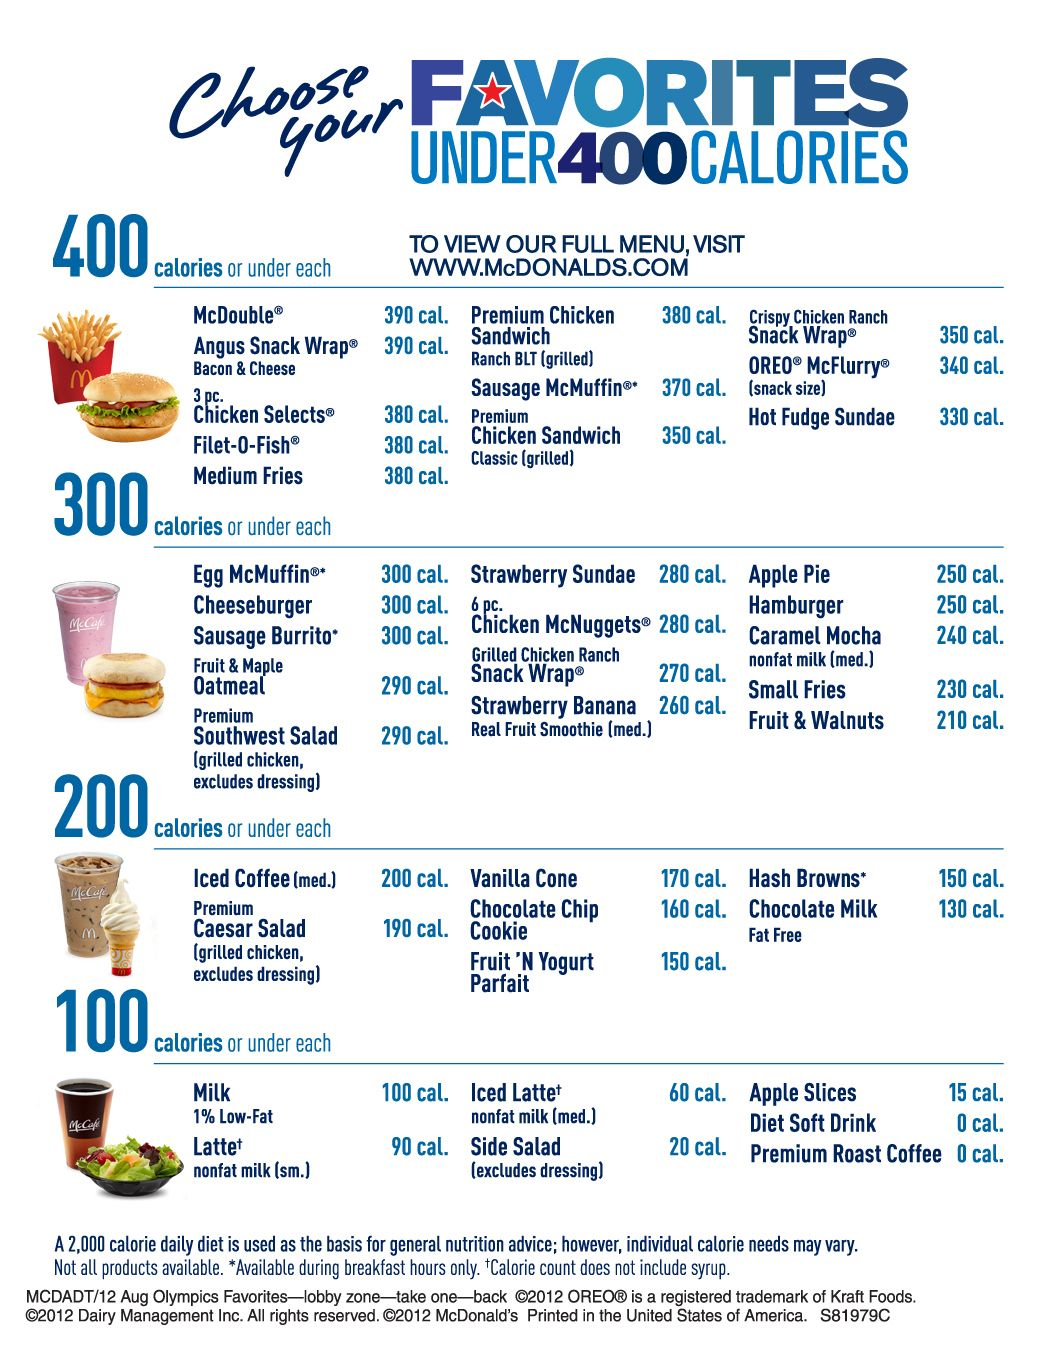 McDonald's Favorites Under 400 Calorie menu features a variety of customers' popular food and beverage choices for under 400 calories. #mcdonalds #McDonald's #400caloriemeals